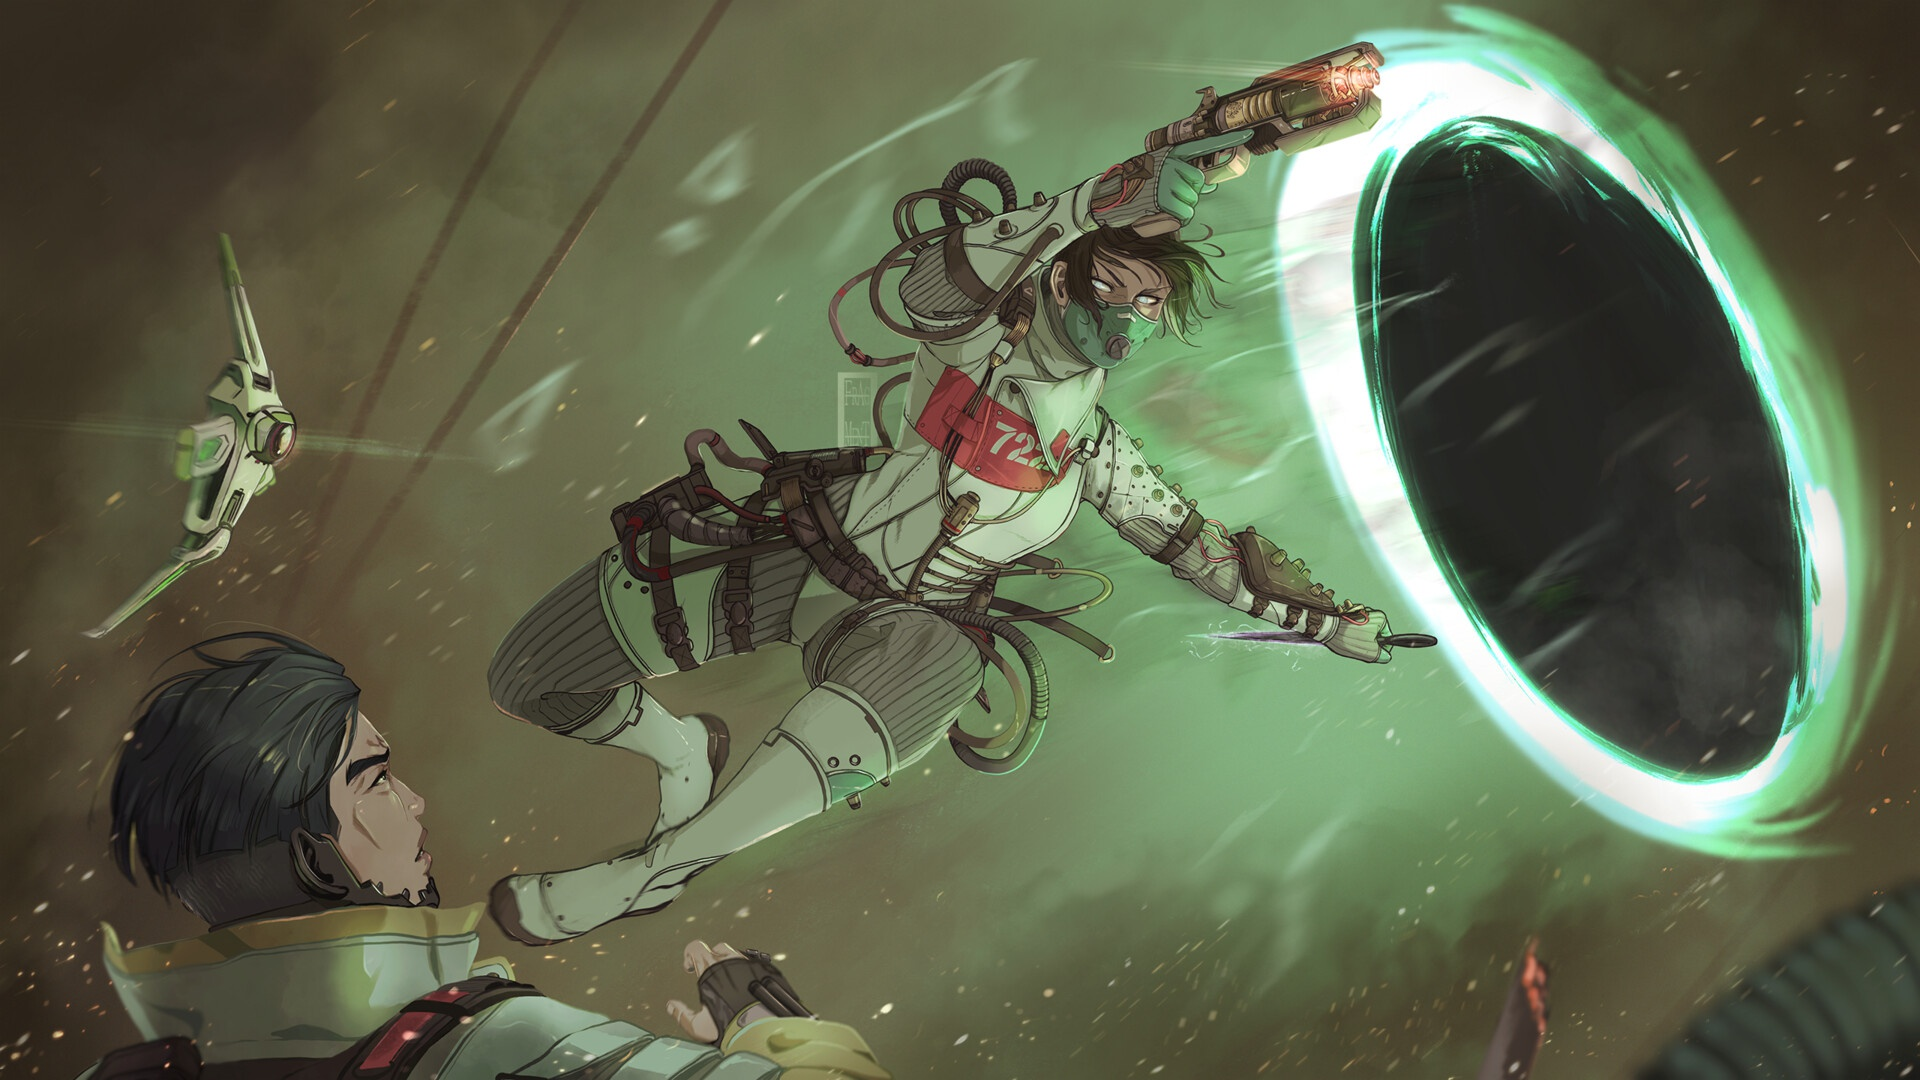 Wallpaper Of Video Game Apex Legends Wraith Background Hd Image